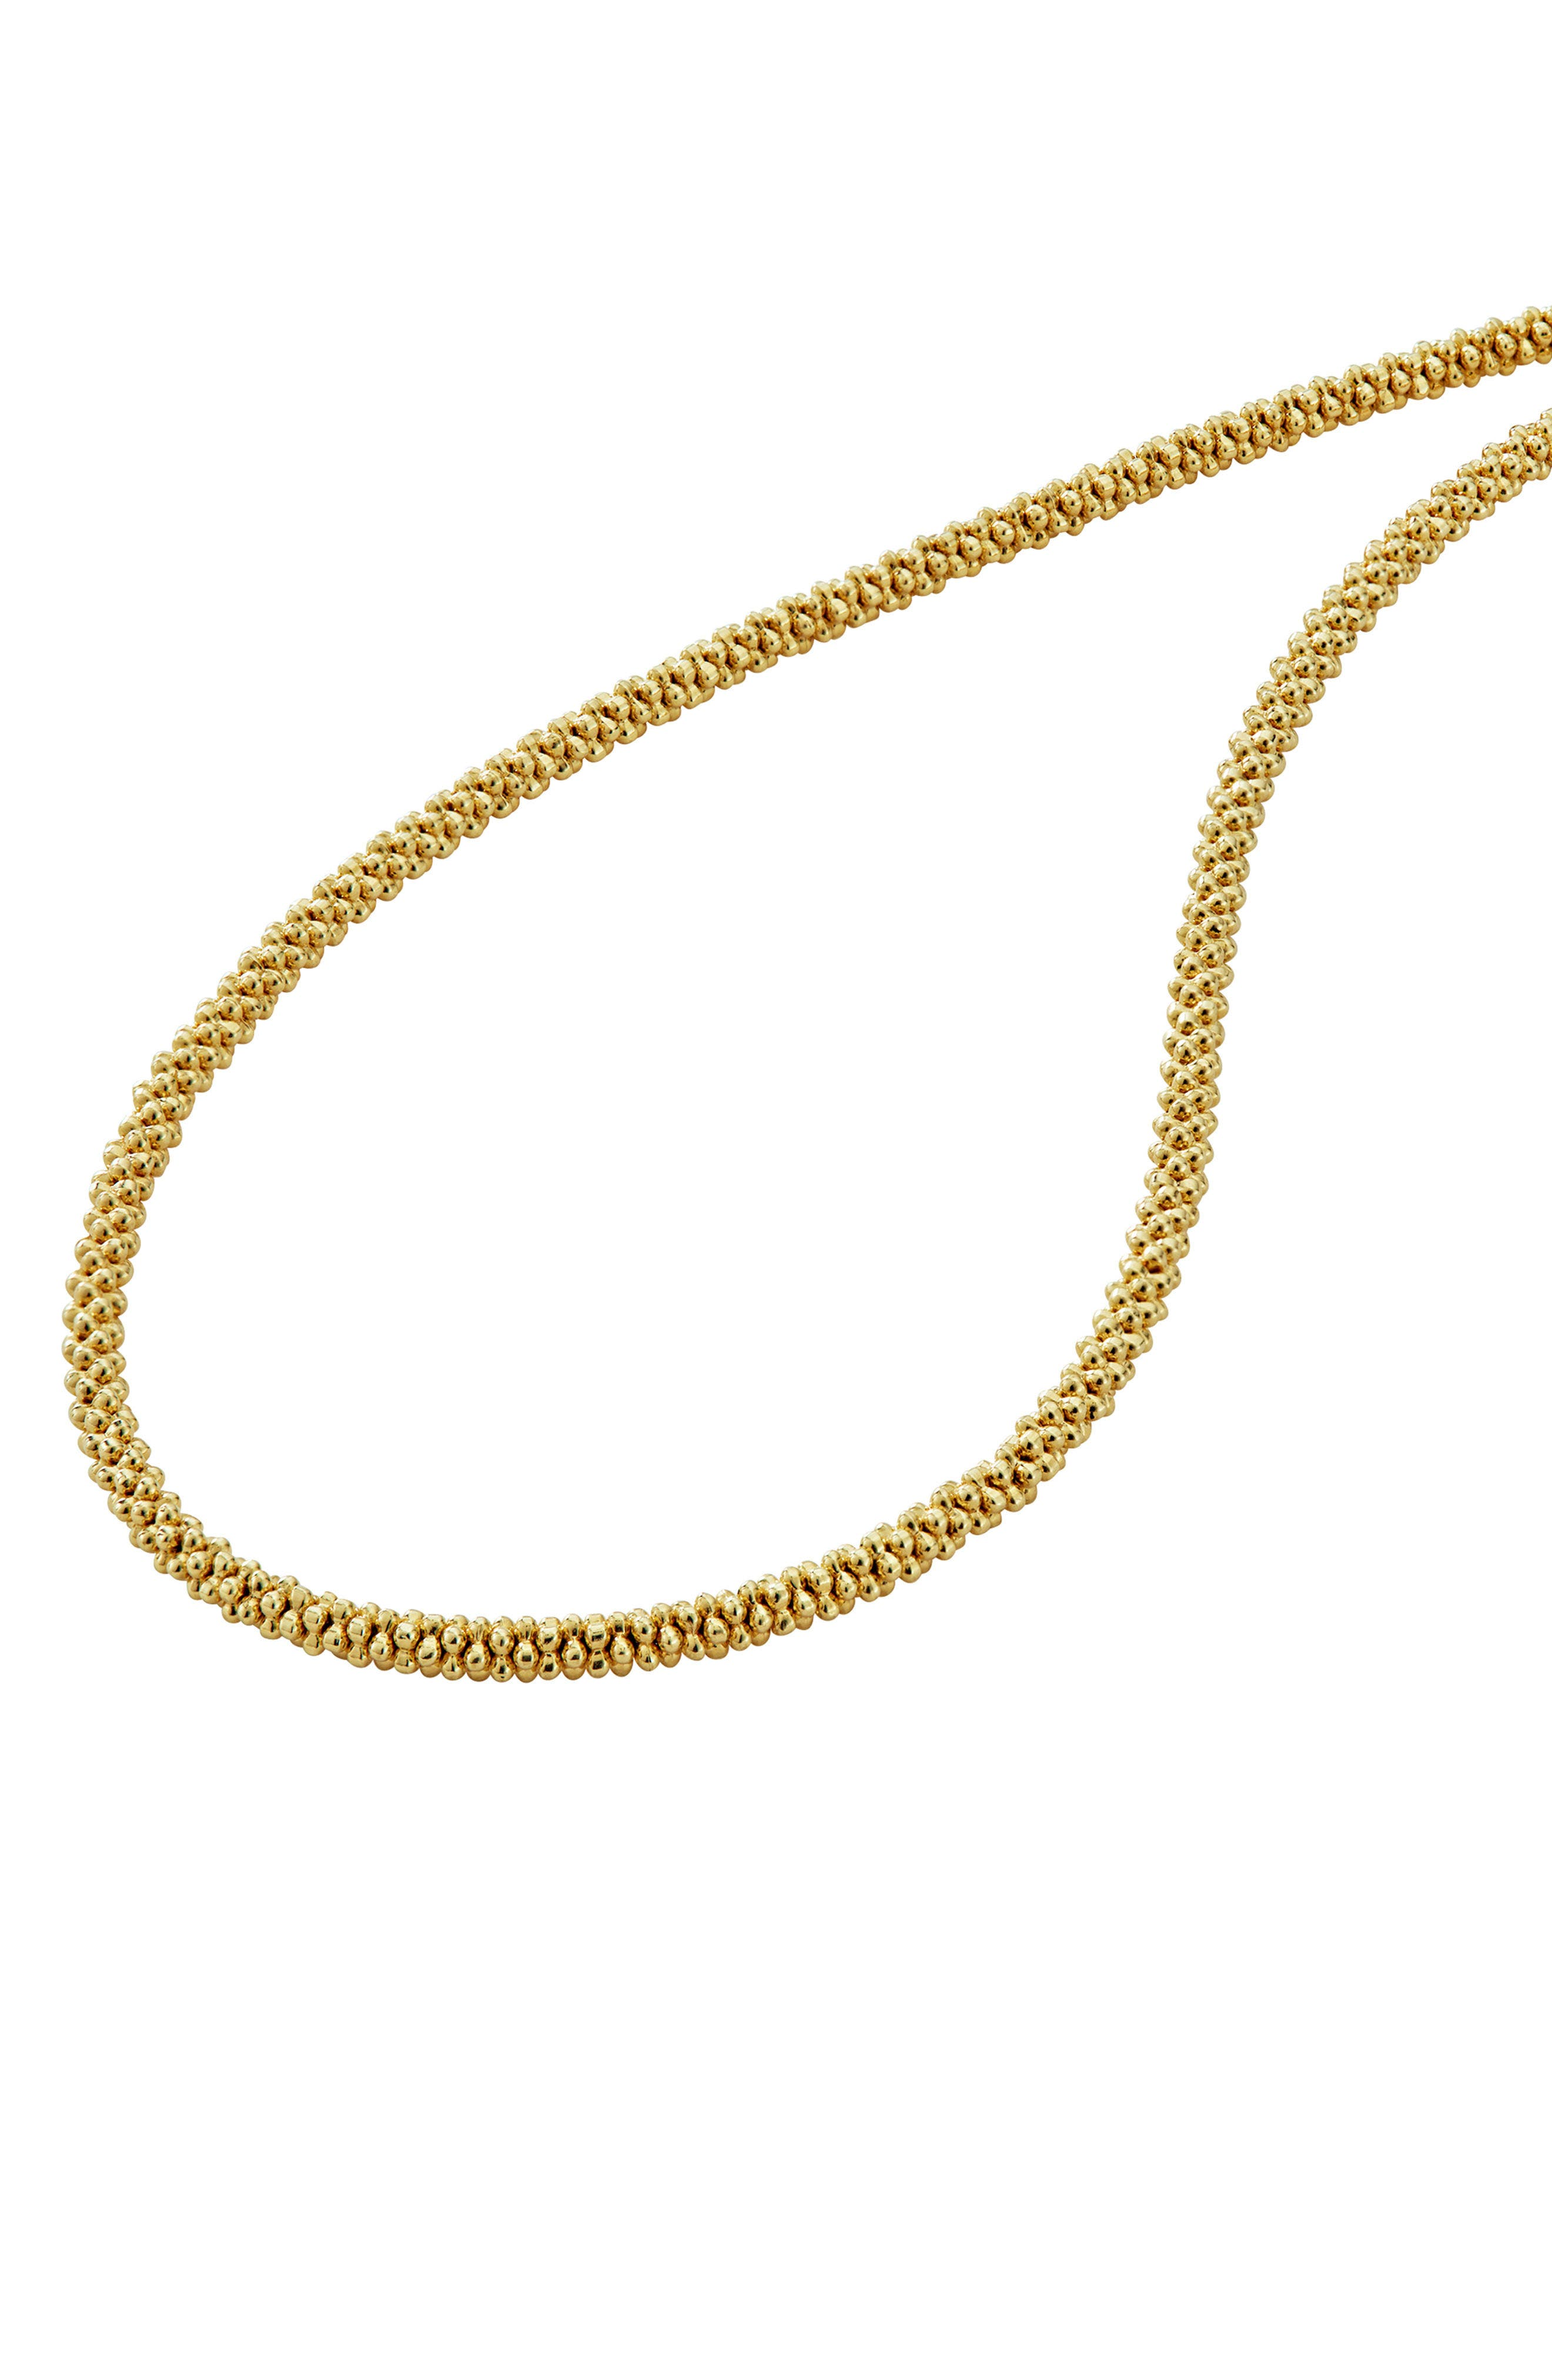 Caviar Gold Rope Necklace,                             Alternate thumbnail 4, color,                             GOLD